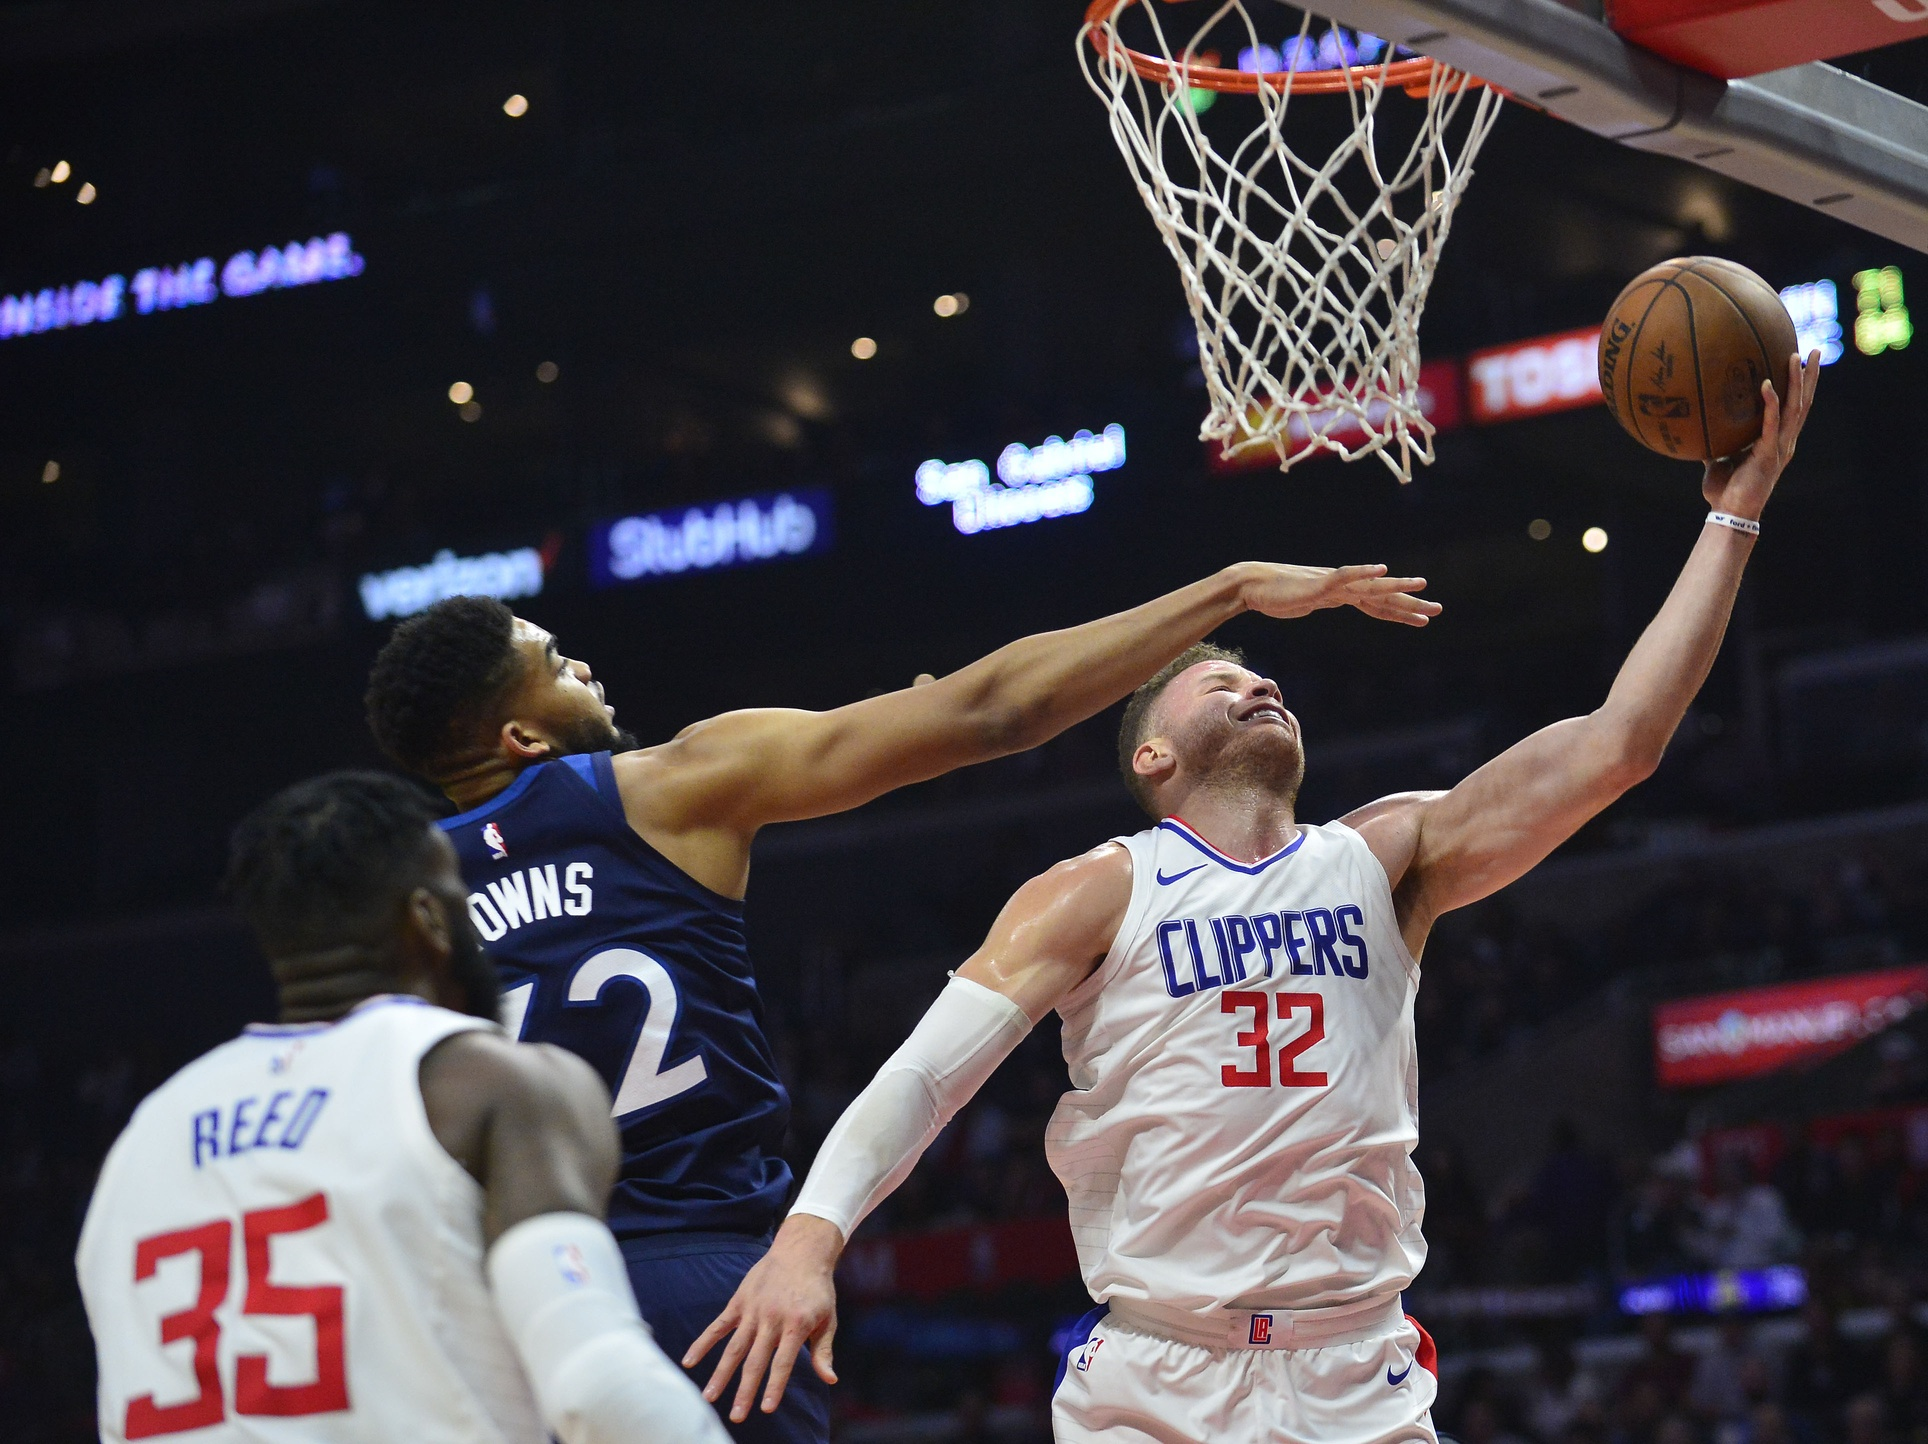 Clippers Fail to Rebound Literally and Metaphorically Against Wolves 126-118